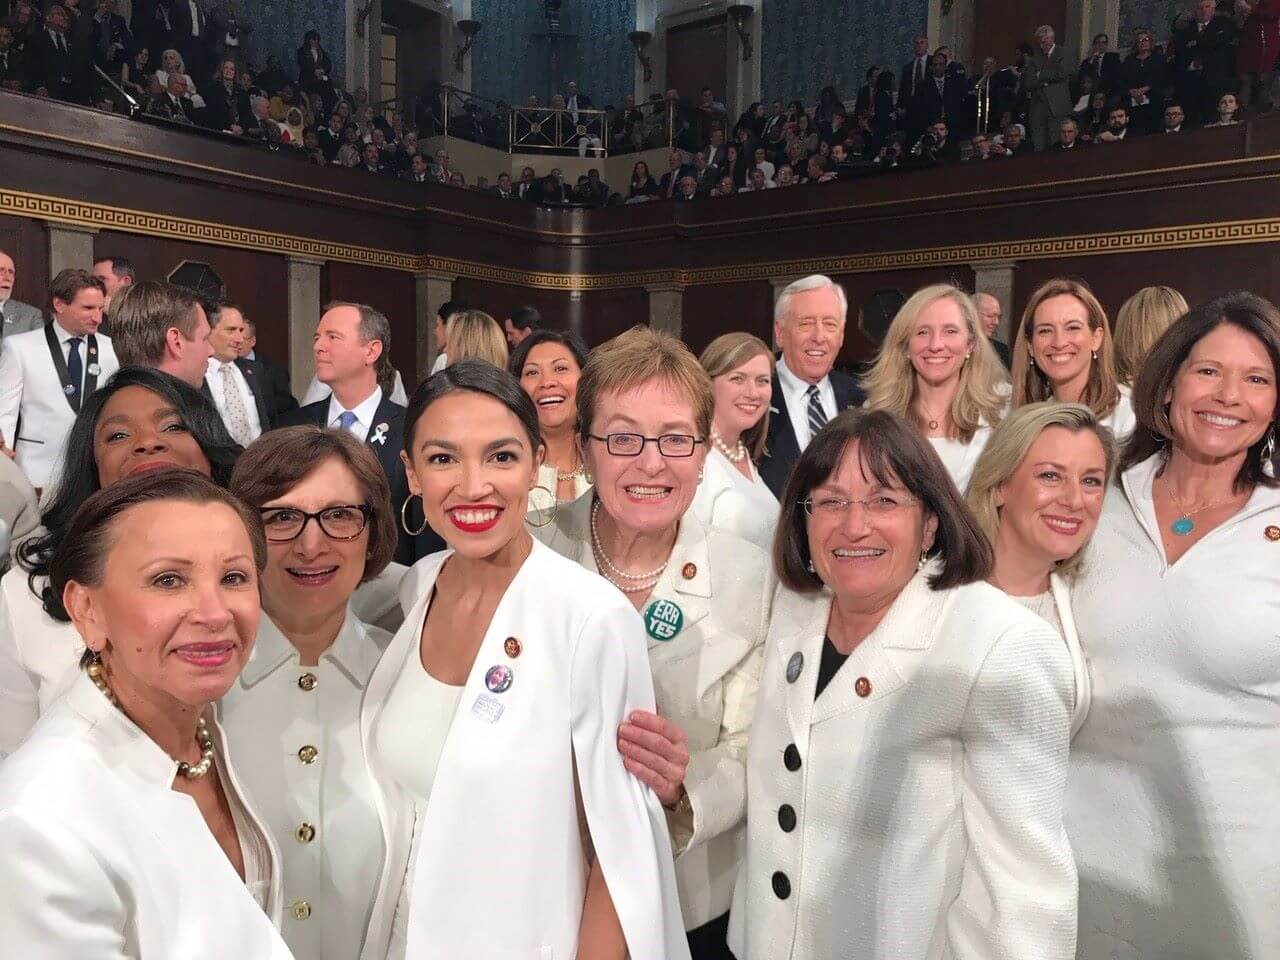 women democrats in white suits